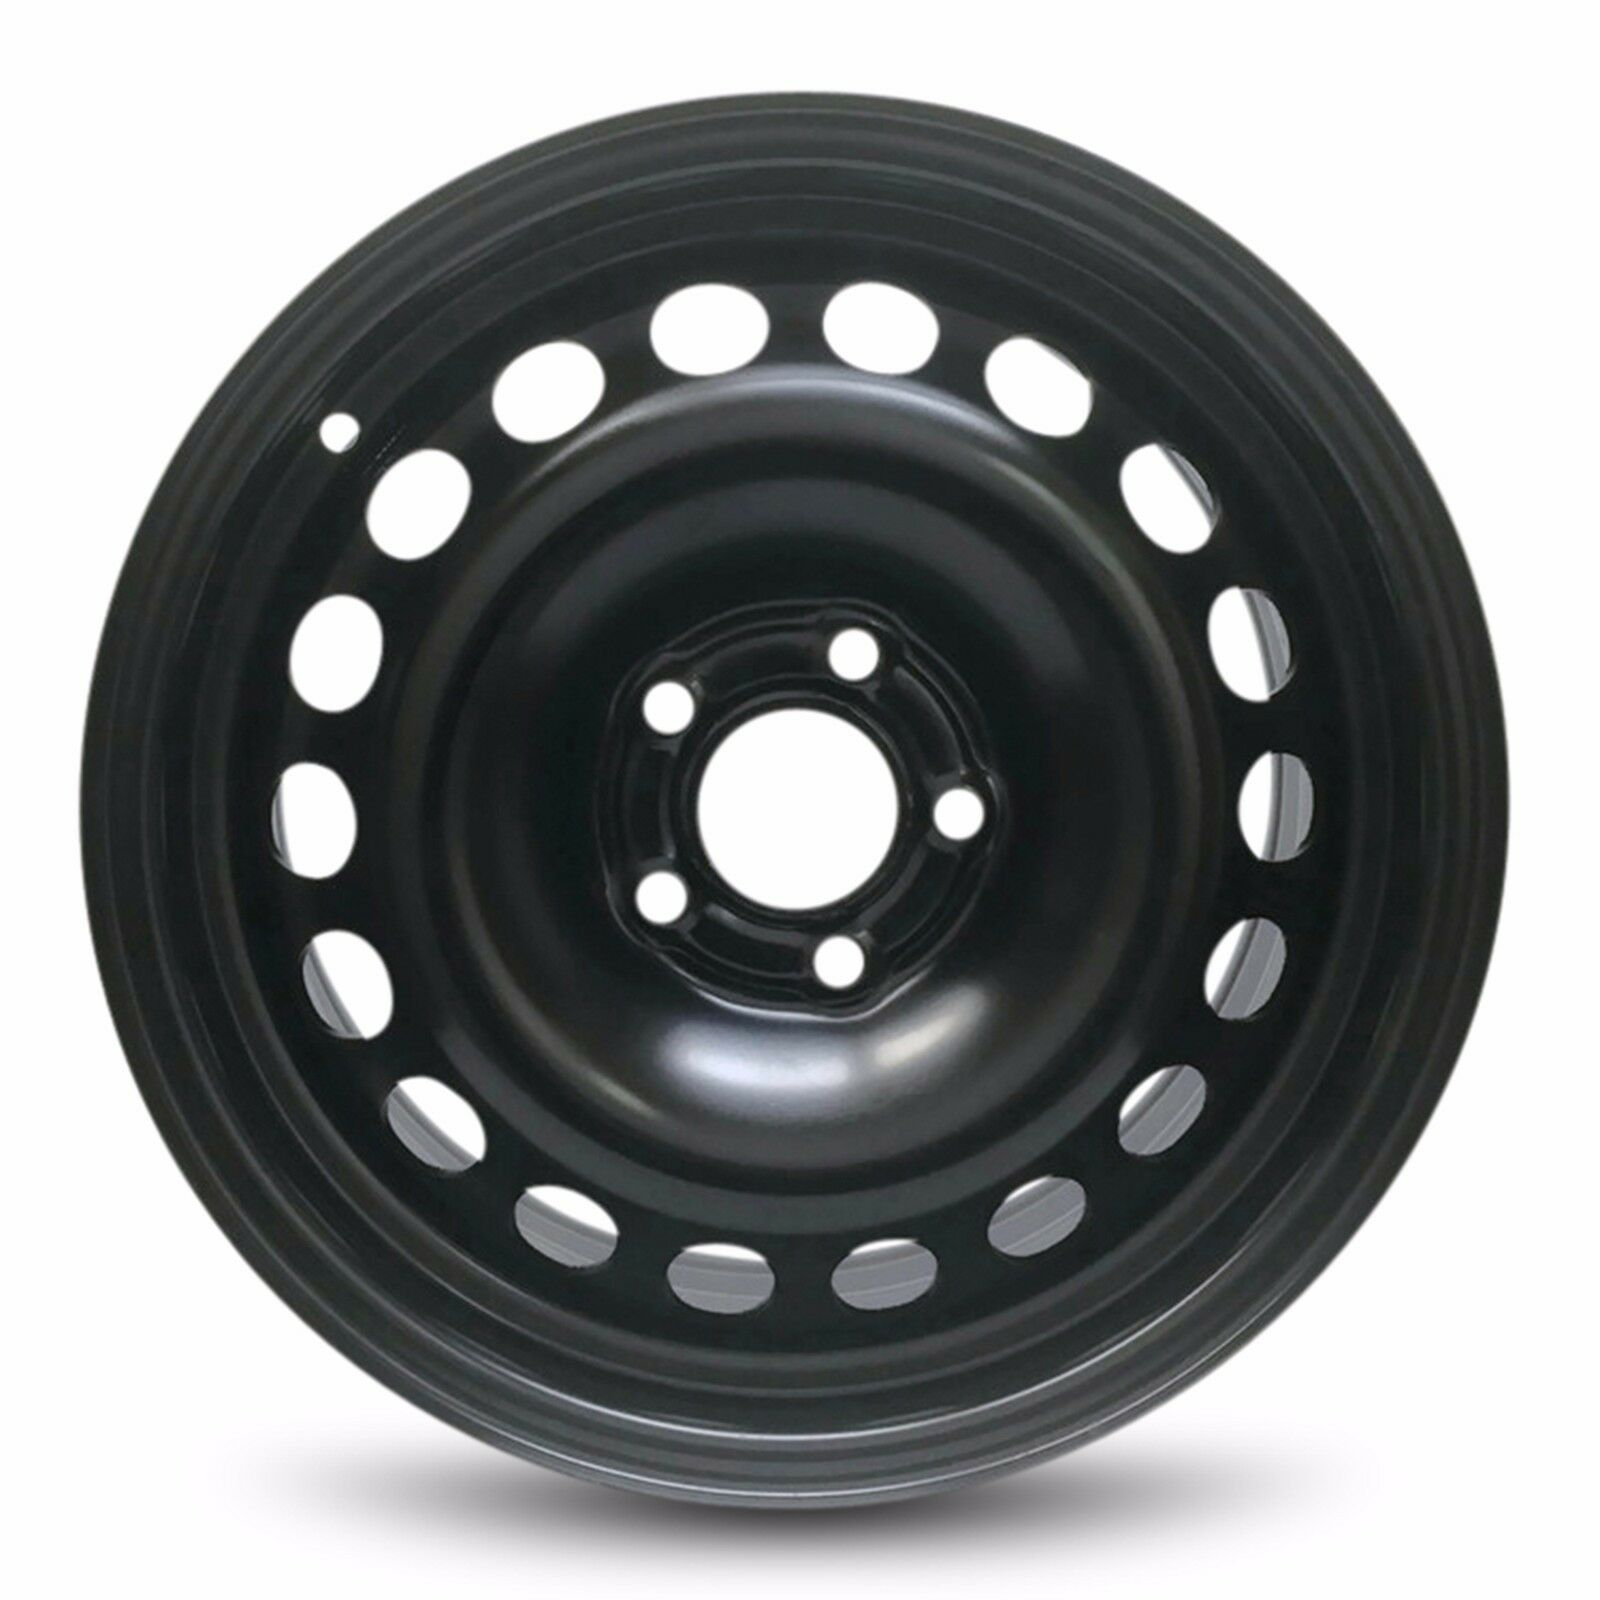 6 Hole 16 Inch Rims Fit : New chevrolet malibu inch hole